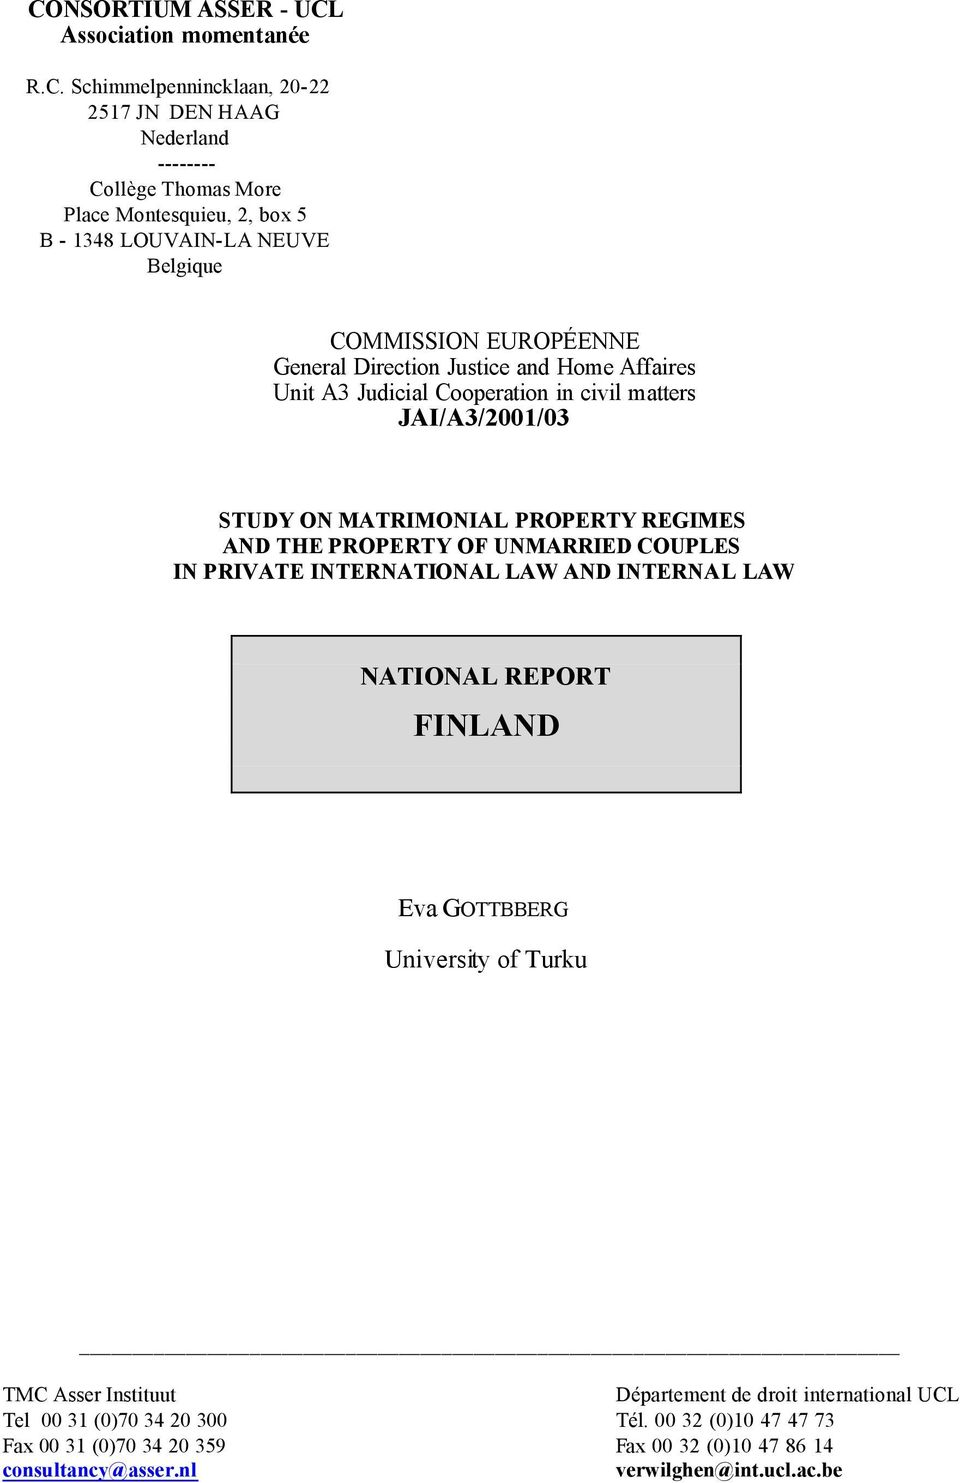 PROPERTY REGIMES AND THE PROPERTY OF UNMARRIED COUPLES IN PRIVATE INTERNATIONAL LAW AND INTERNAL LAW NATIONAL REPORT FINLAND Eva GOTTBBERG University of Turku TMC Asser